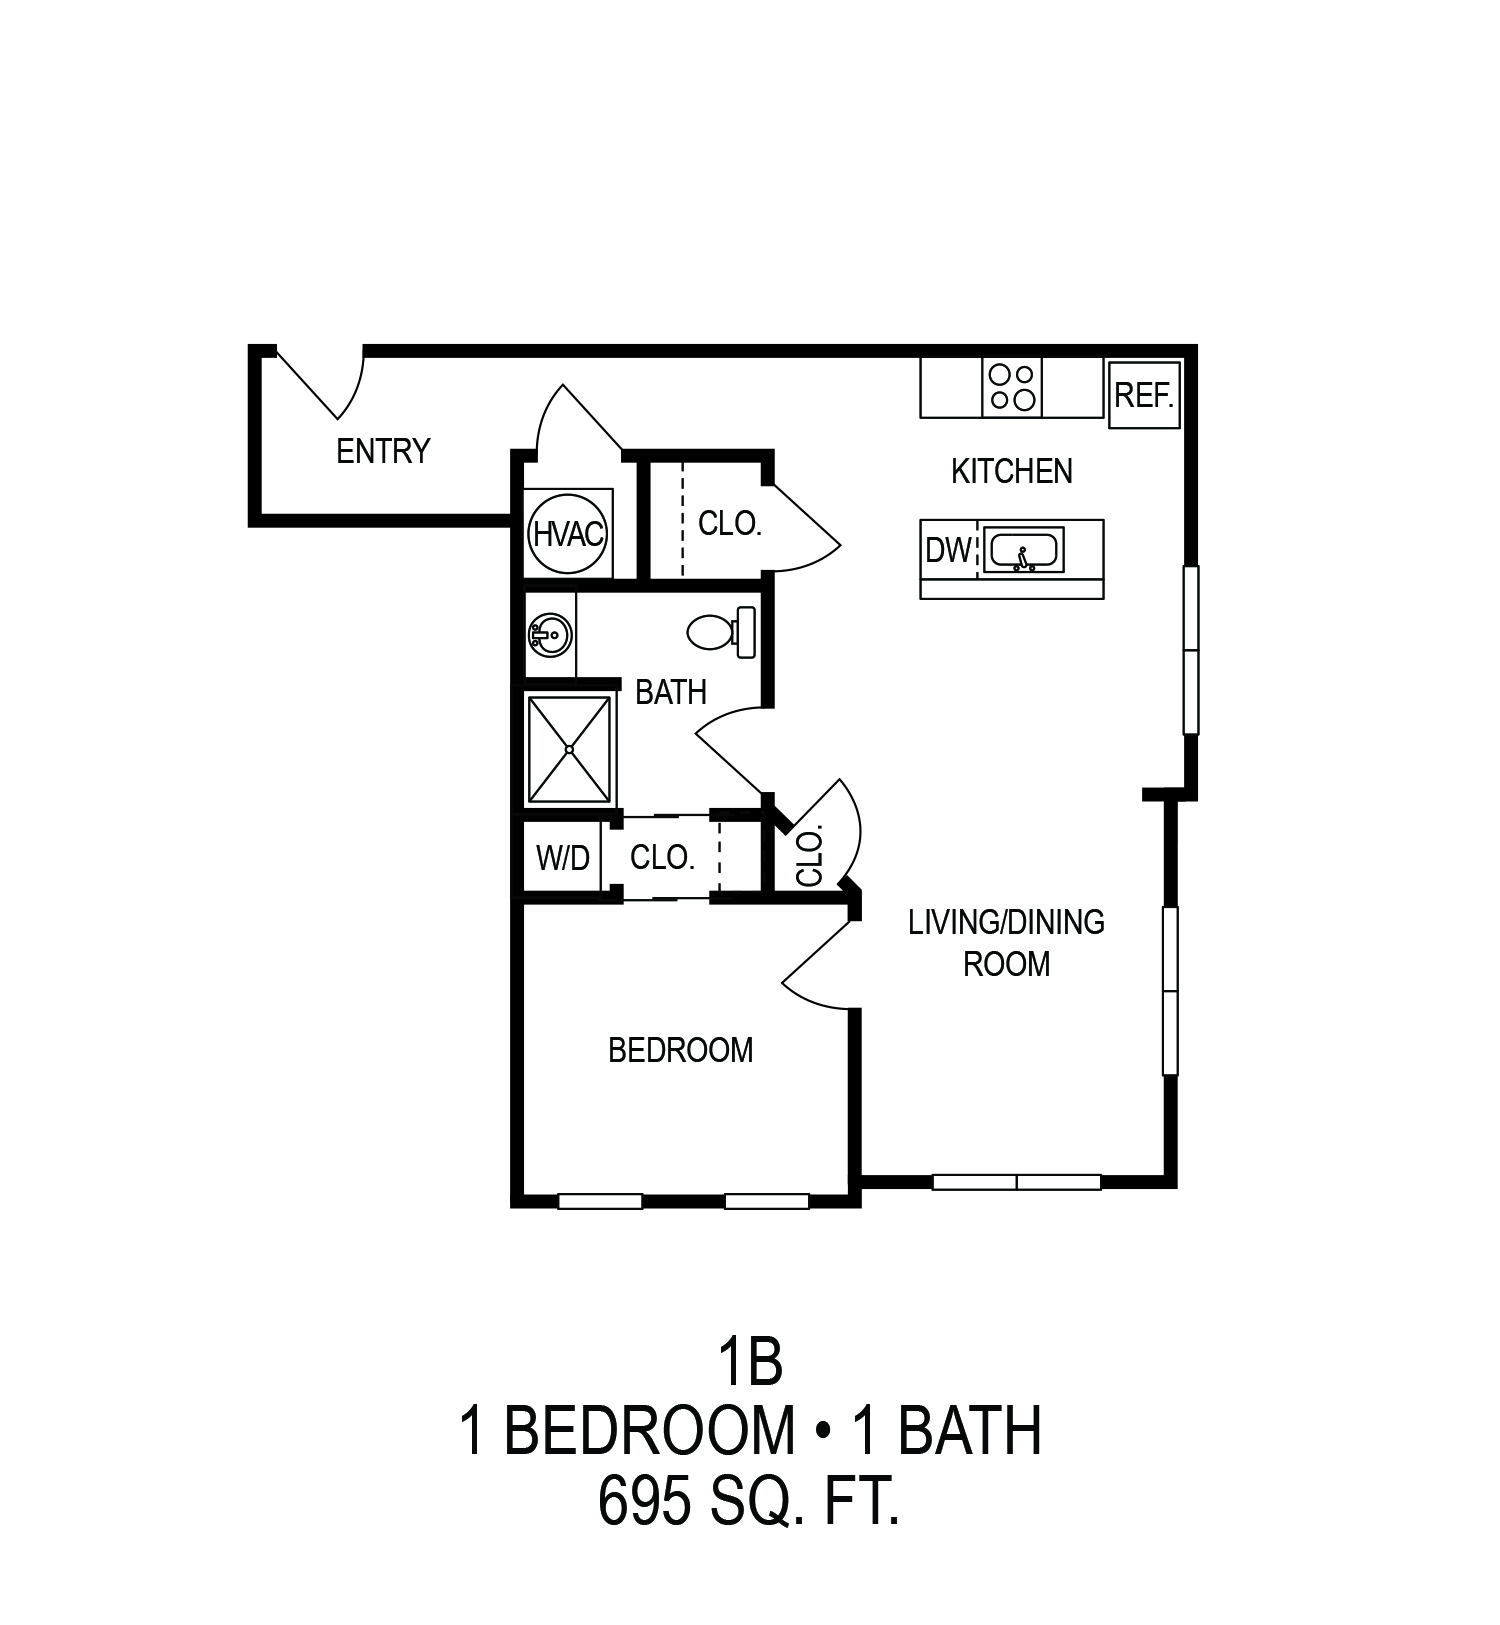 625 S. Goodman Apartments - Floorplan - One Bedroom (B)